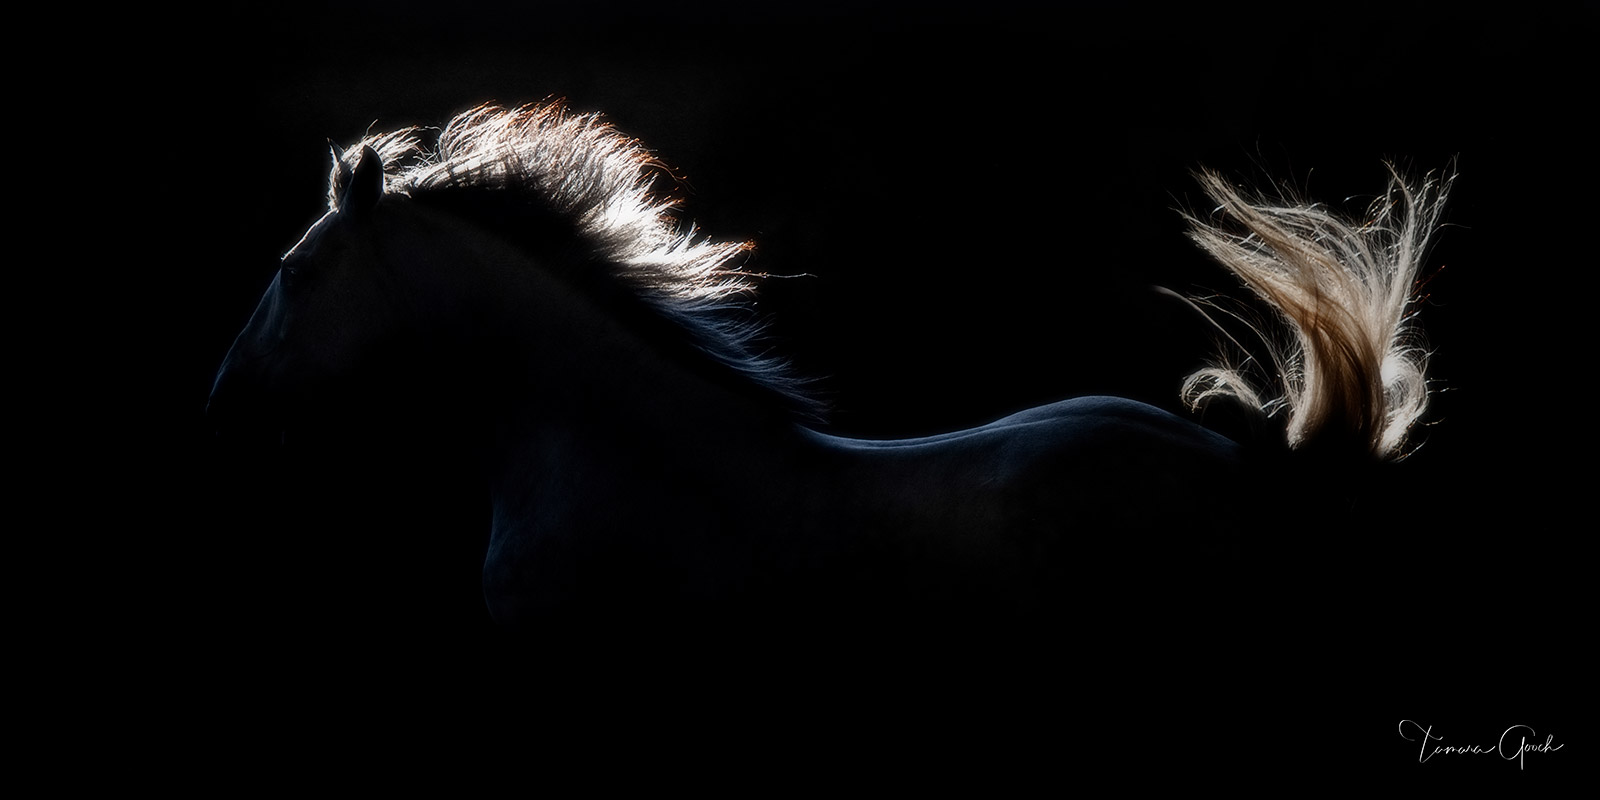 Lusitano,  fine art, limited edition, horse, horses, horse photos,  horse photography, art, home decor, interior design, equine, equestrian, prints, Lumachr, photo